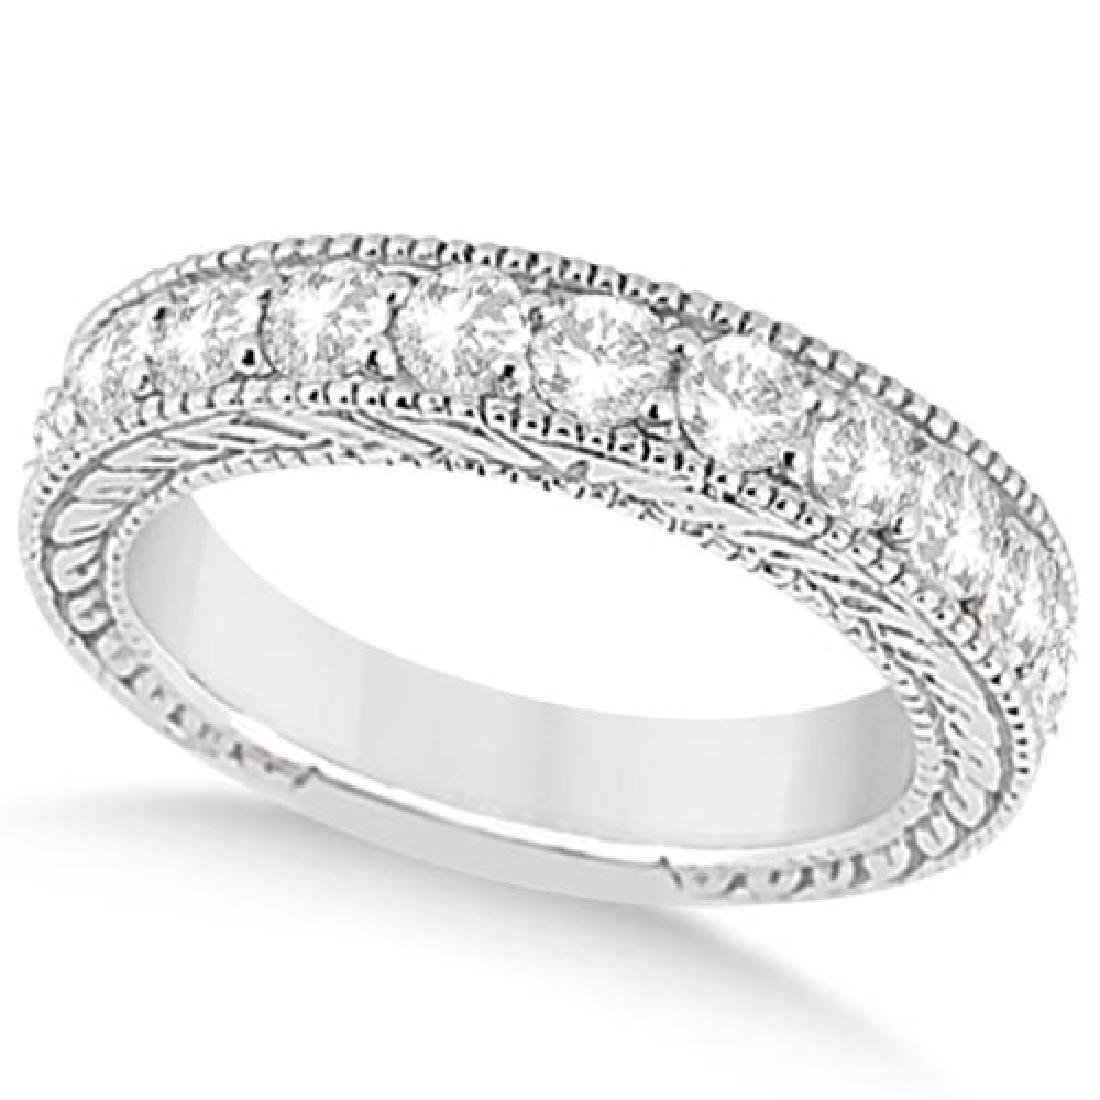 Antique Diamond Engagement Wedding Ring Band Platinum (